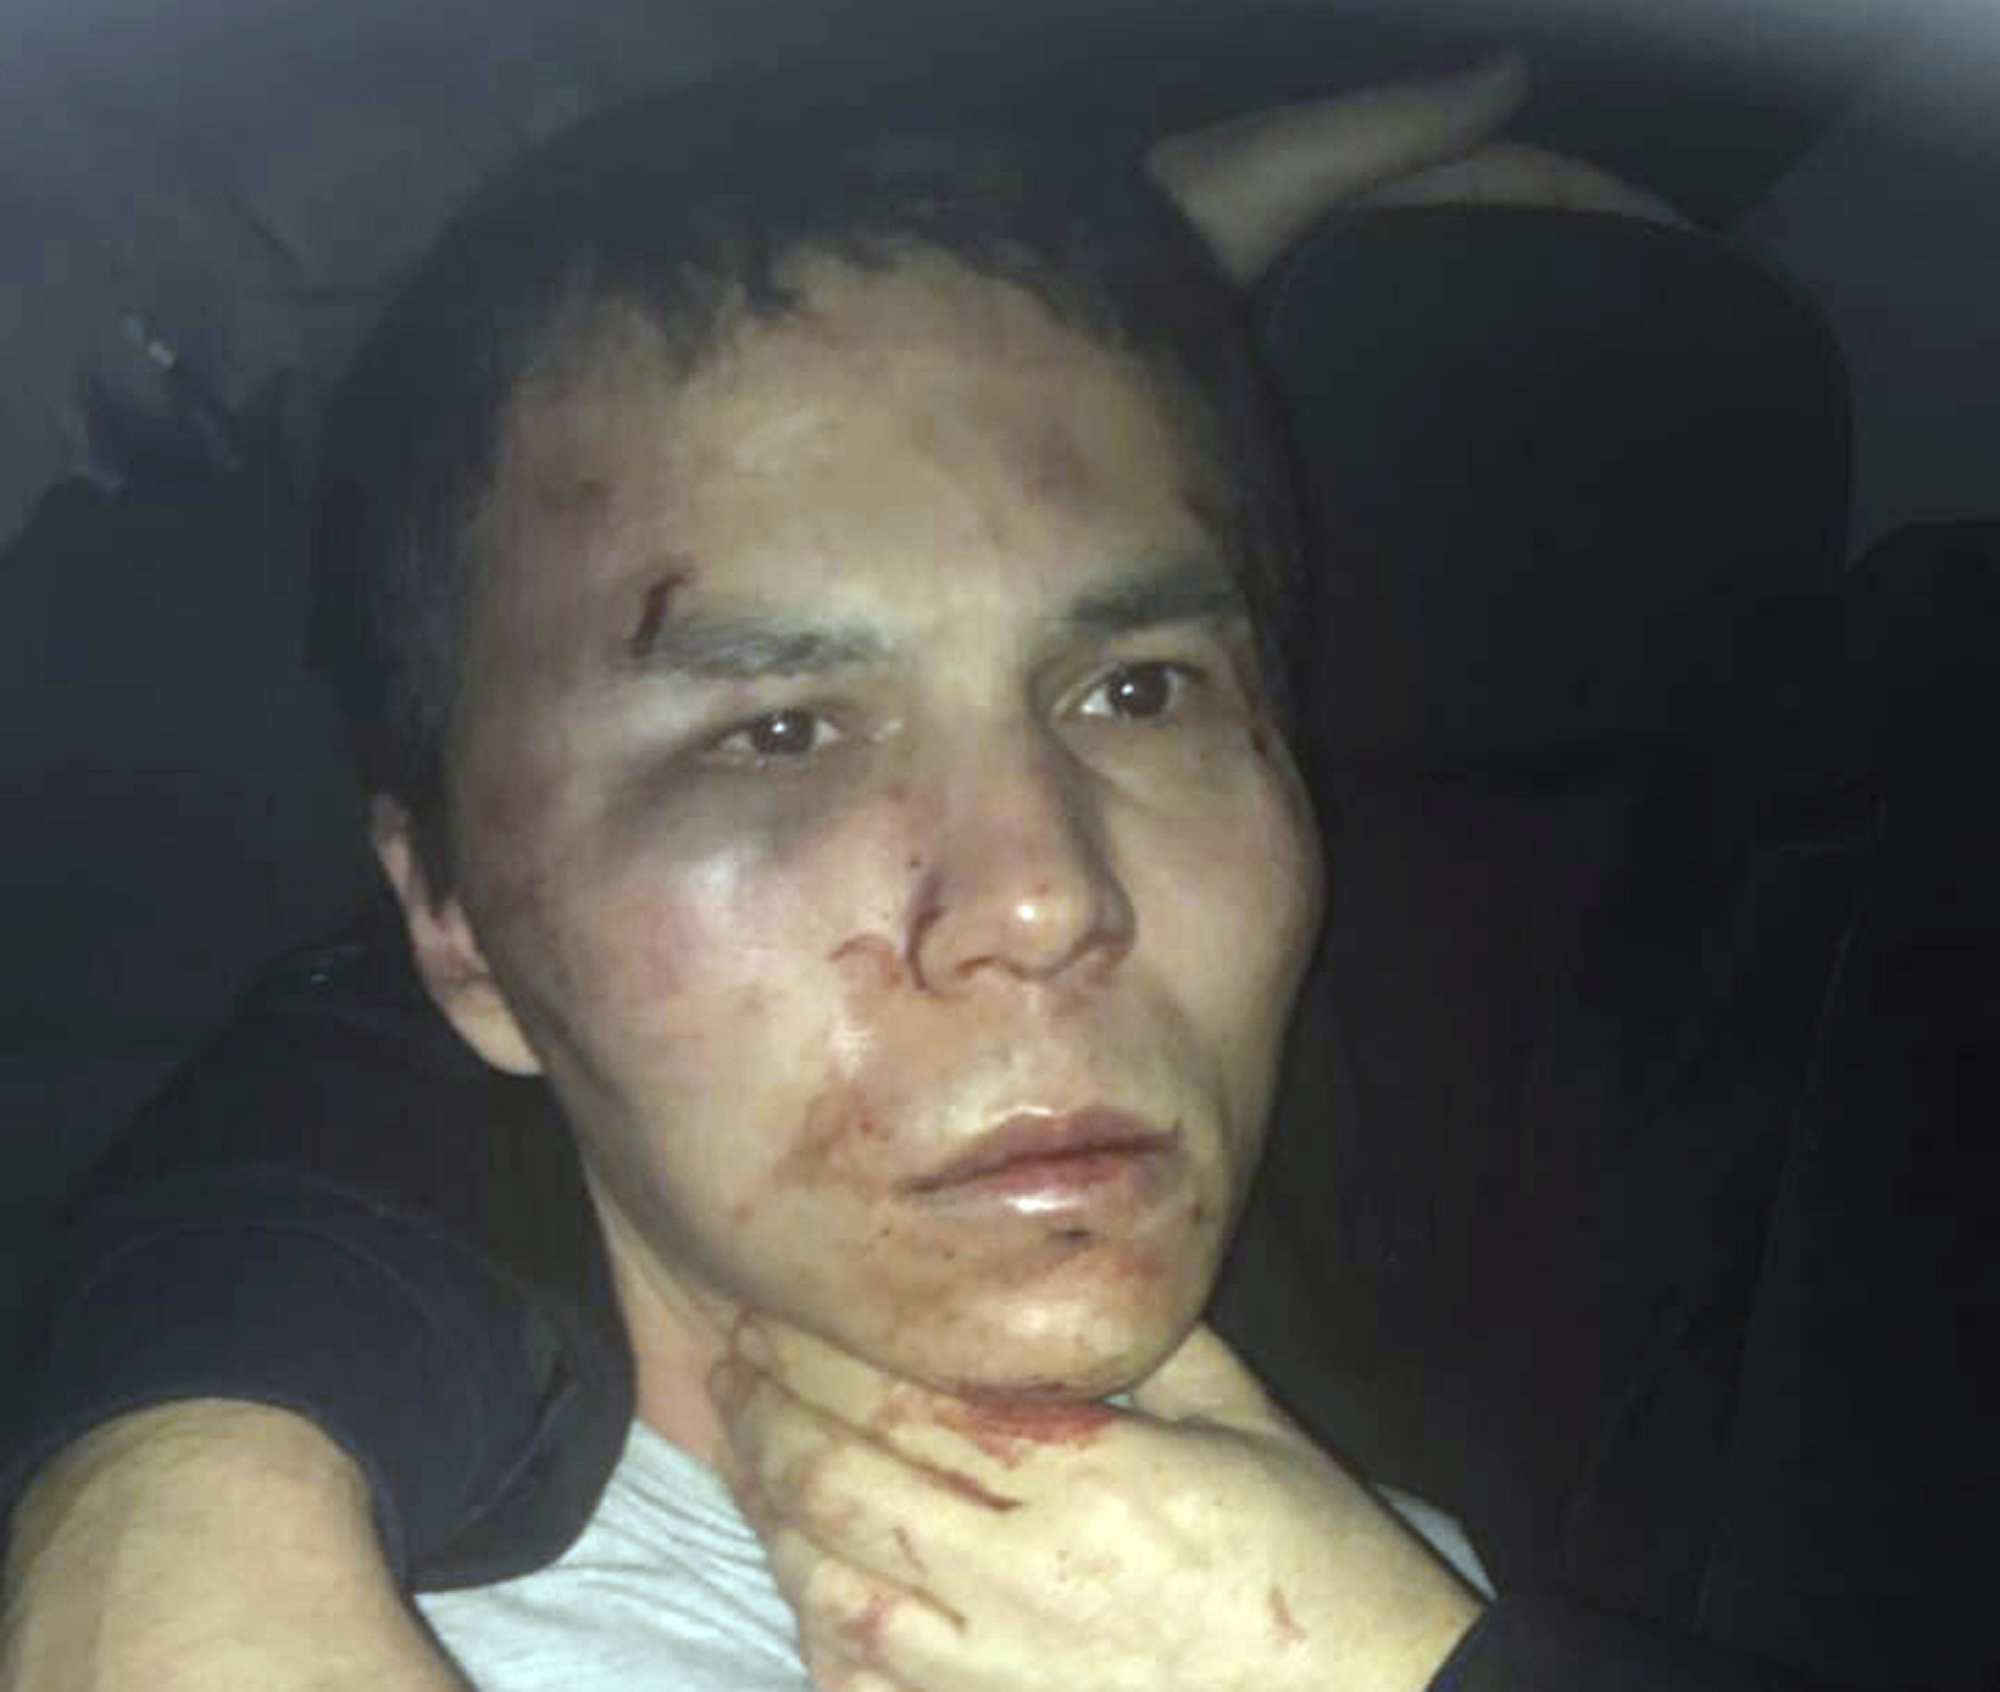 Reina club attacker after being caught by Turkish police in Istanbul on Jan. 16, 2017. (Depo Photos via AP)